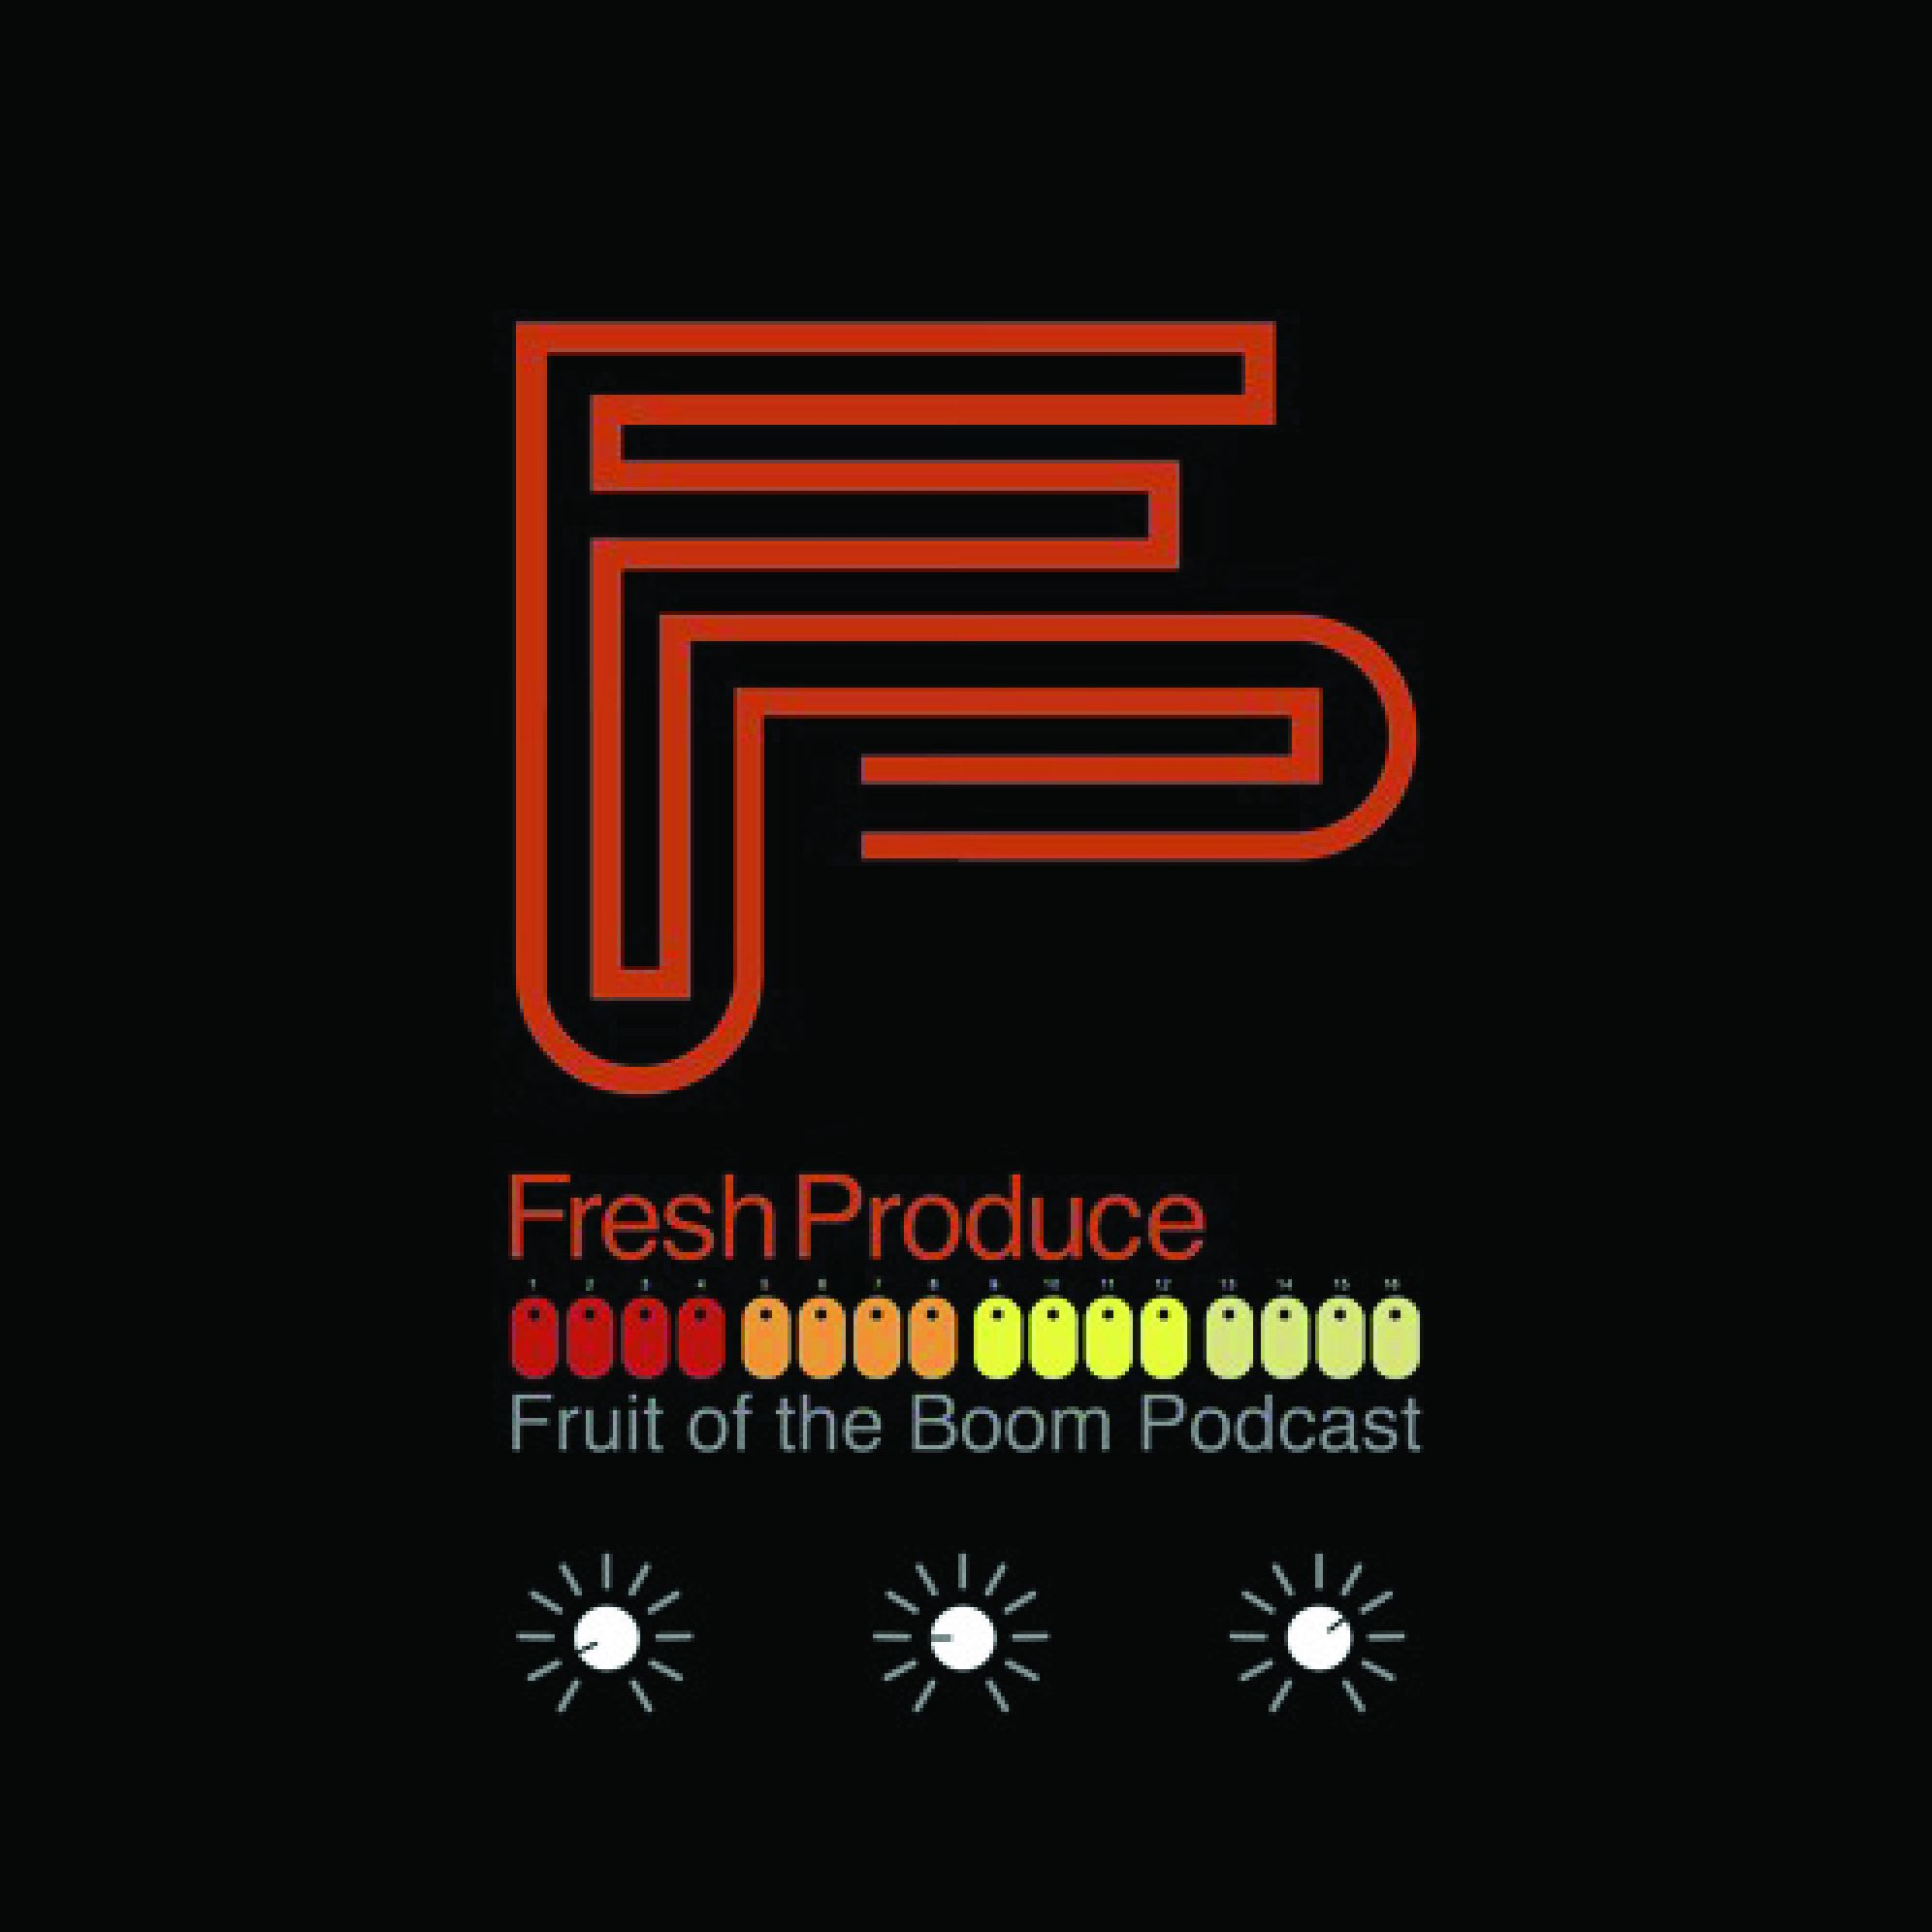 Fruit of the Boom Podcast